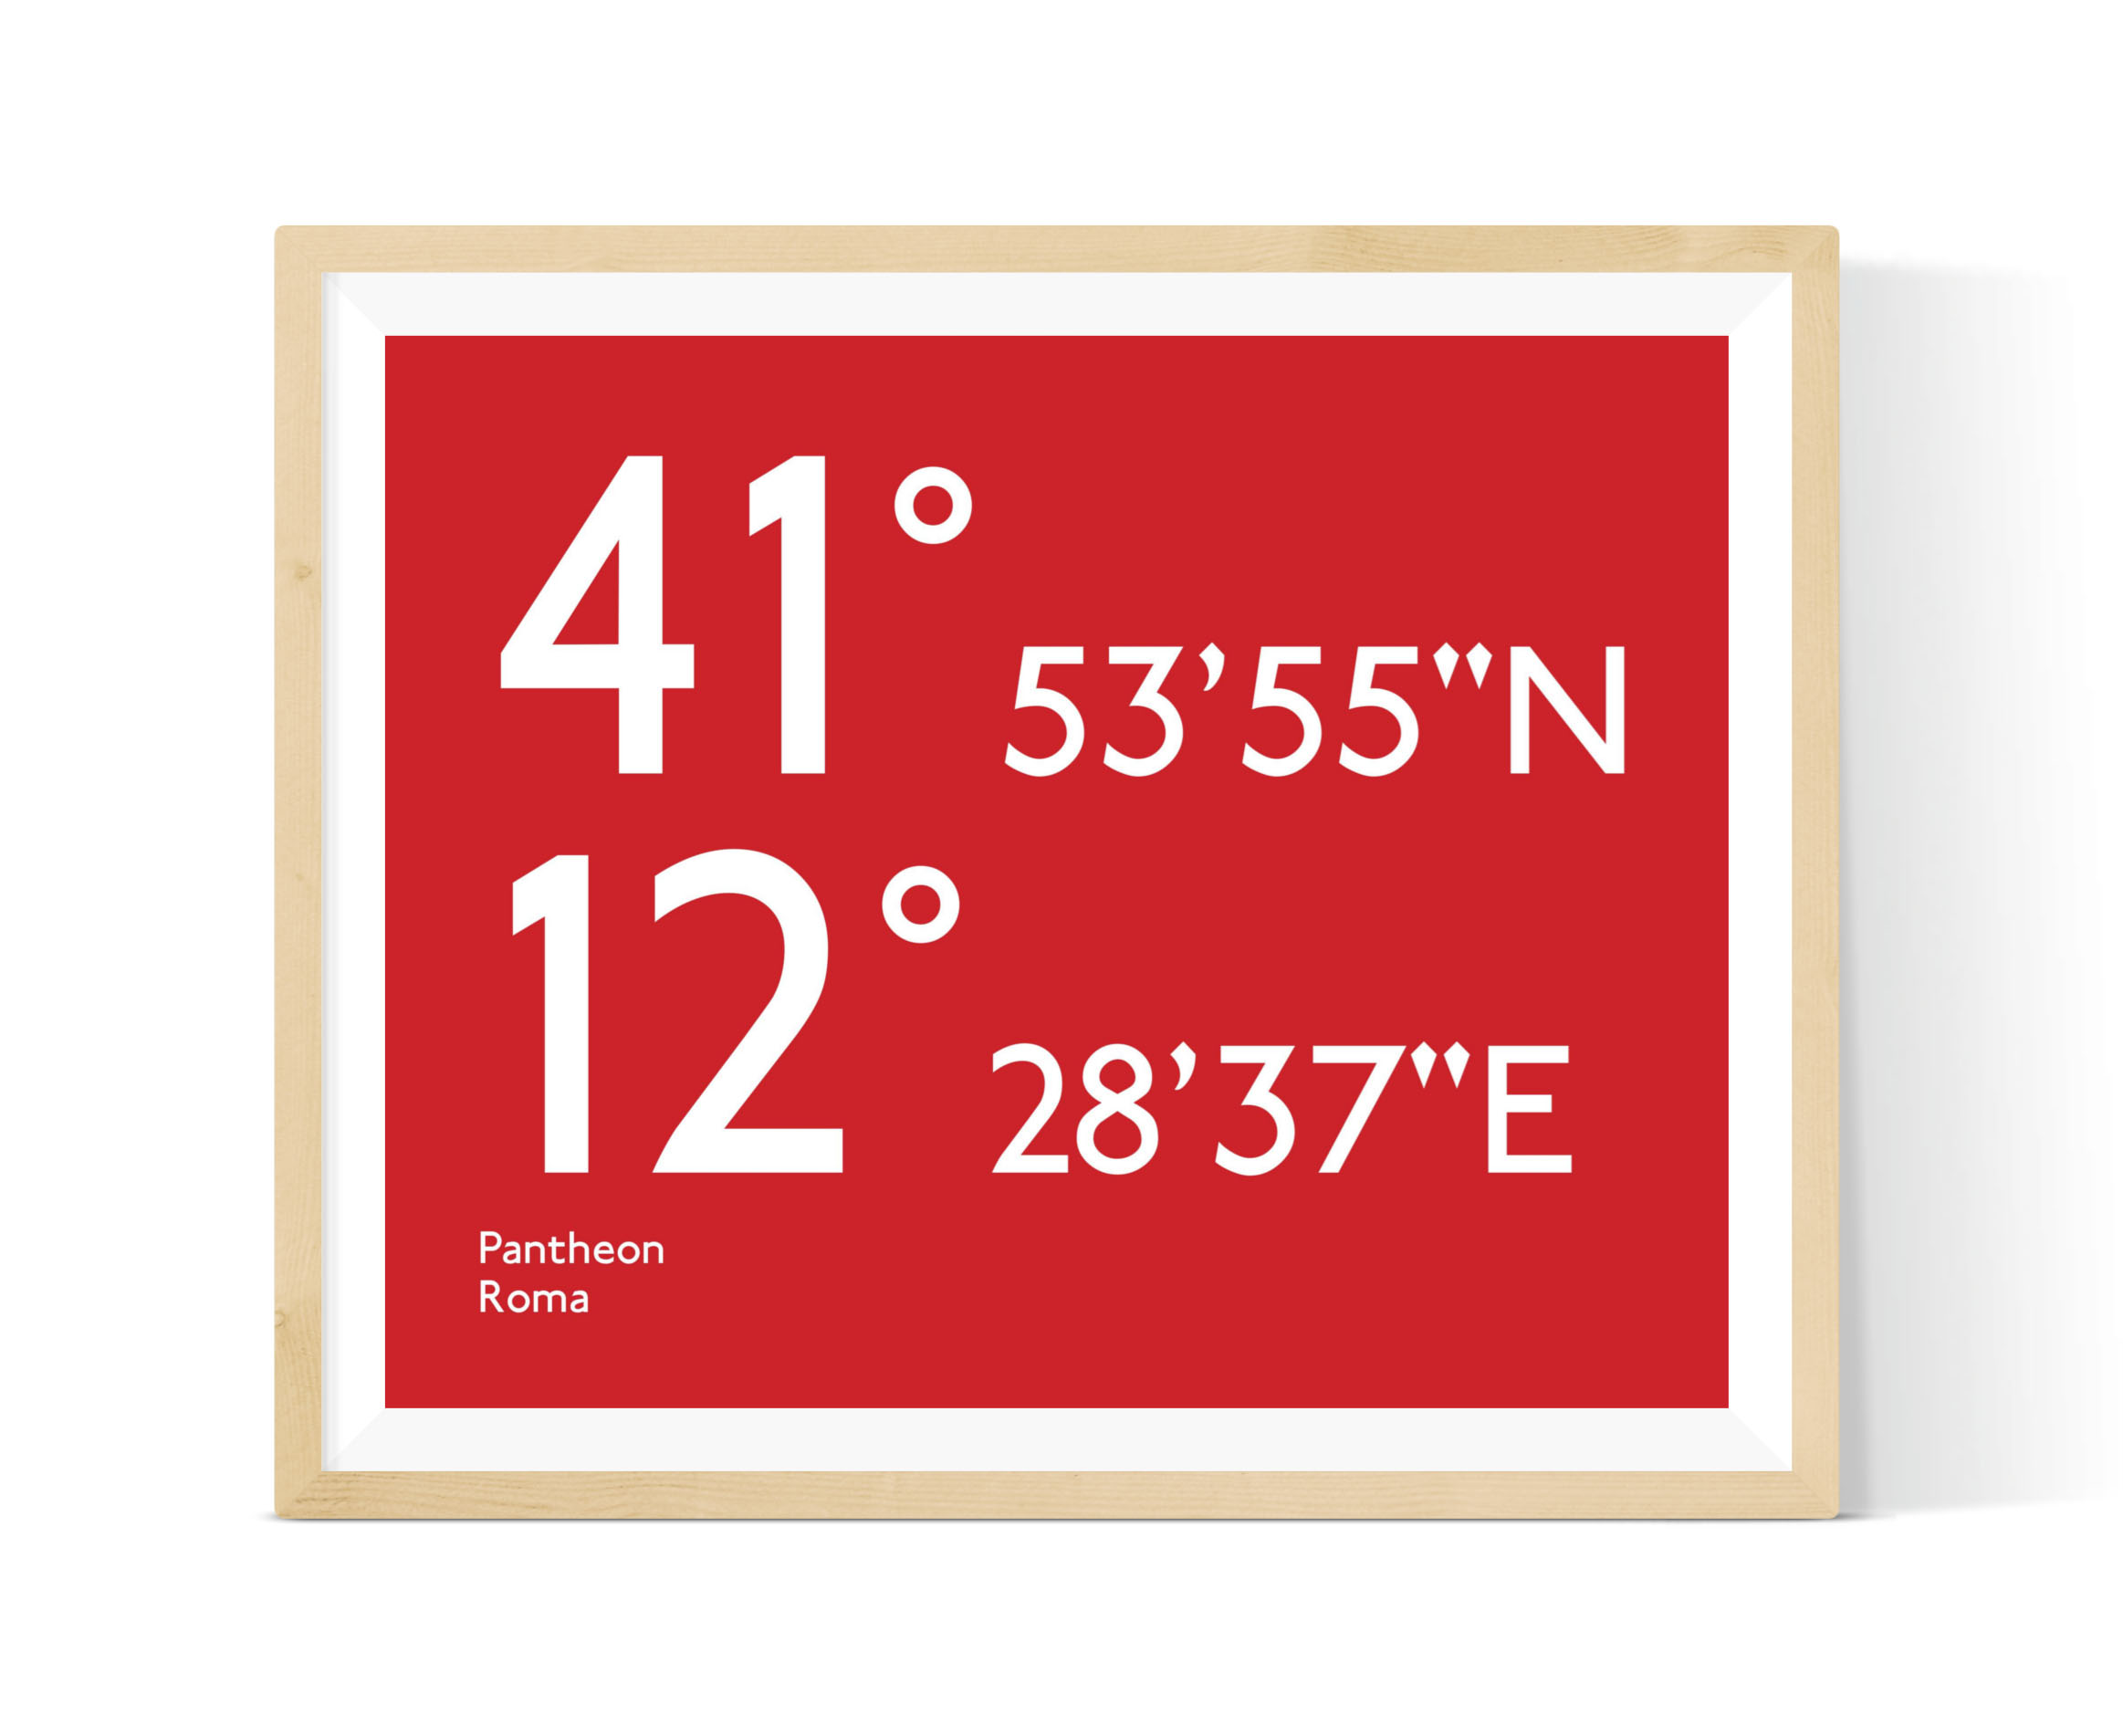 Coordinates - Capture your favourite destination in this eye-catching print which celebrates the exact coordinates of your chosen spot. We do all the hard work, you just need to enter your chosen location on our map or in the text box to generate the coordinates.